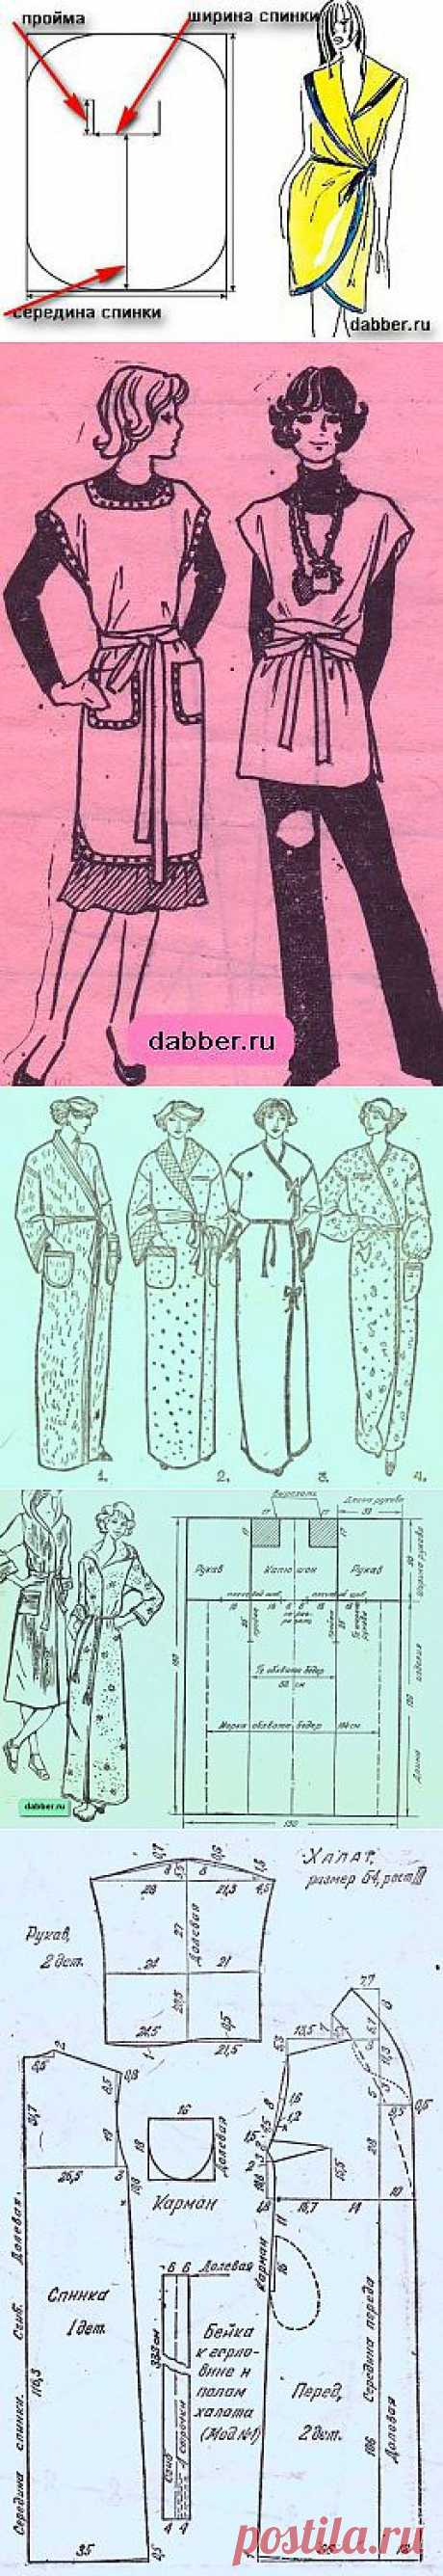 Patterns of women's dressing gowns\u000d\u000aSelection of simple patterns of dressing women's gowns with which sewing even the beginning seamstress can cope.